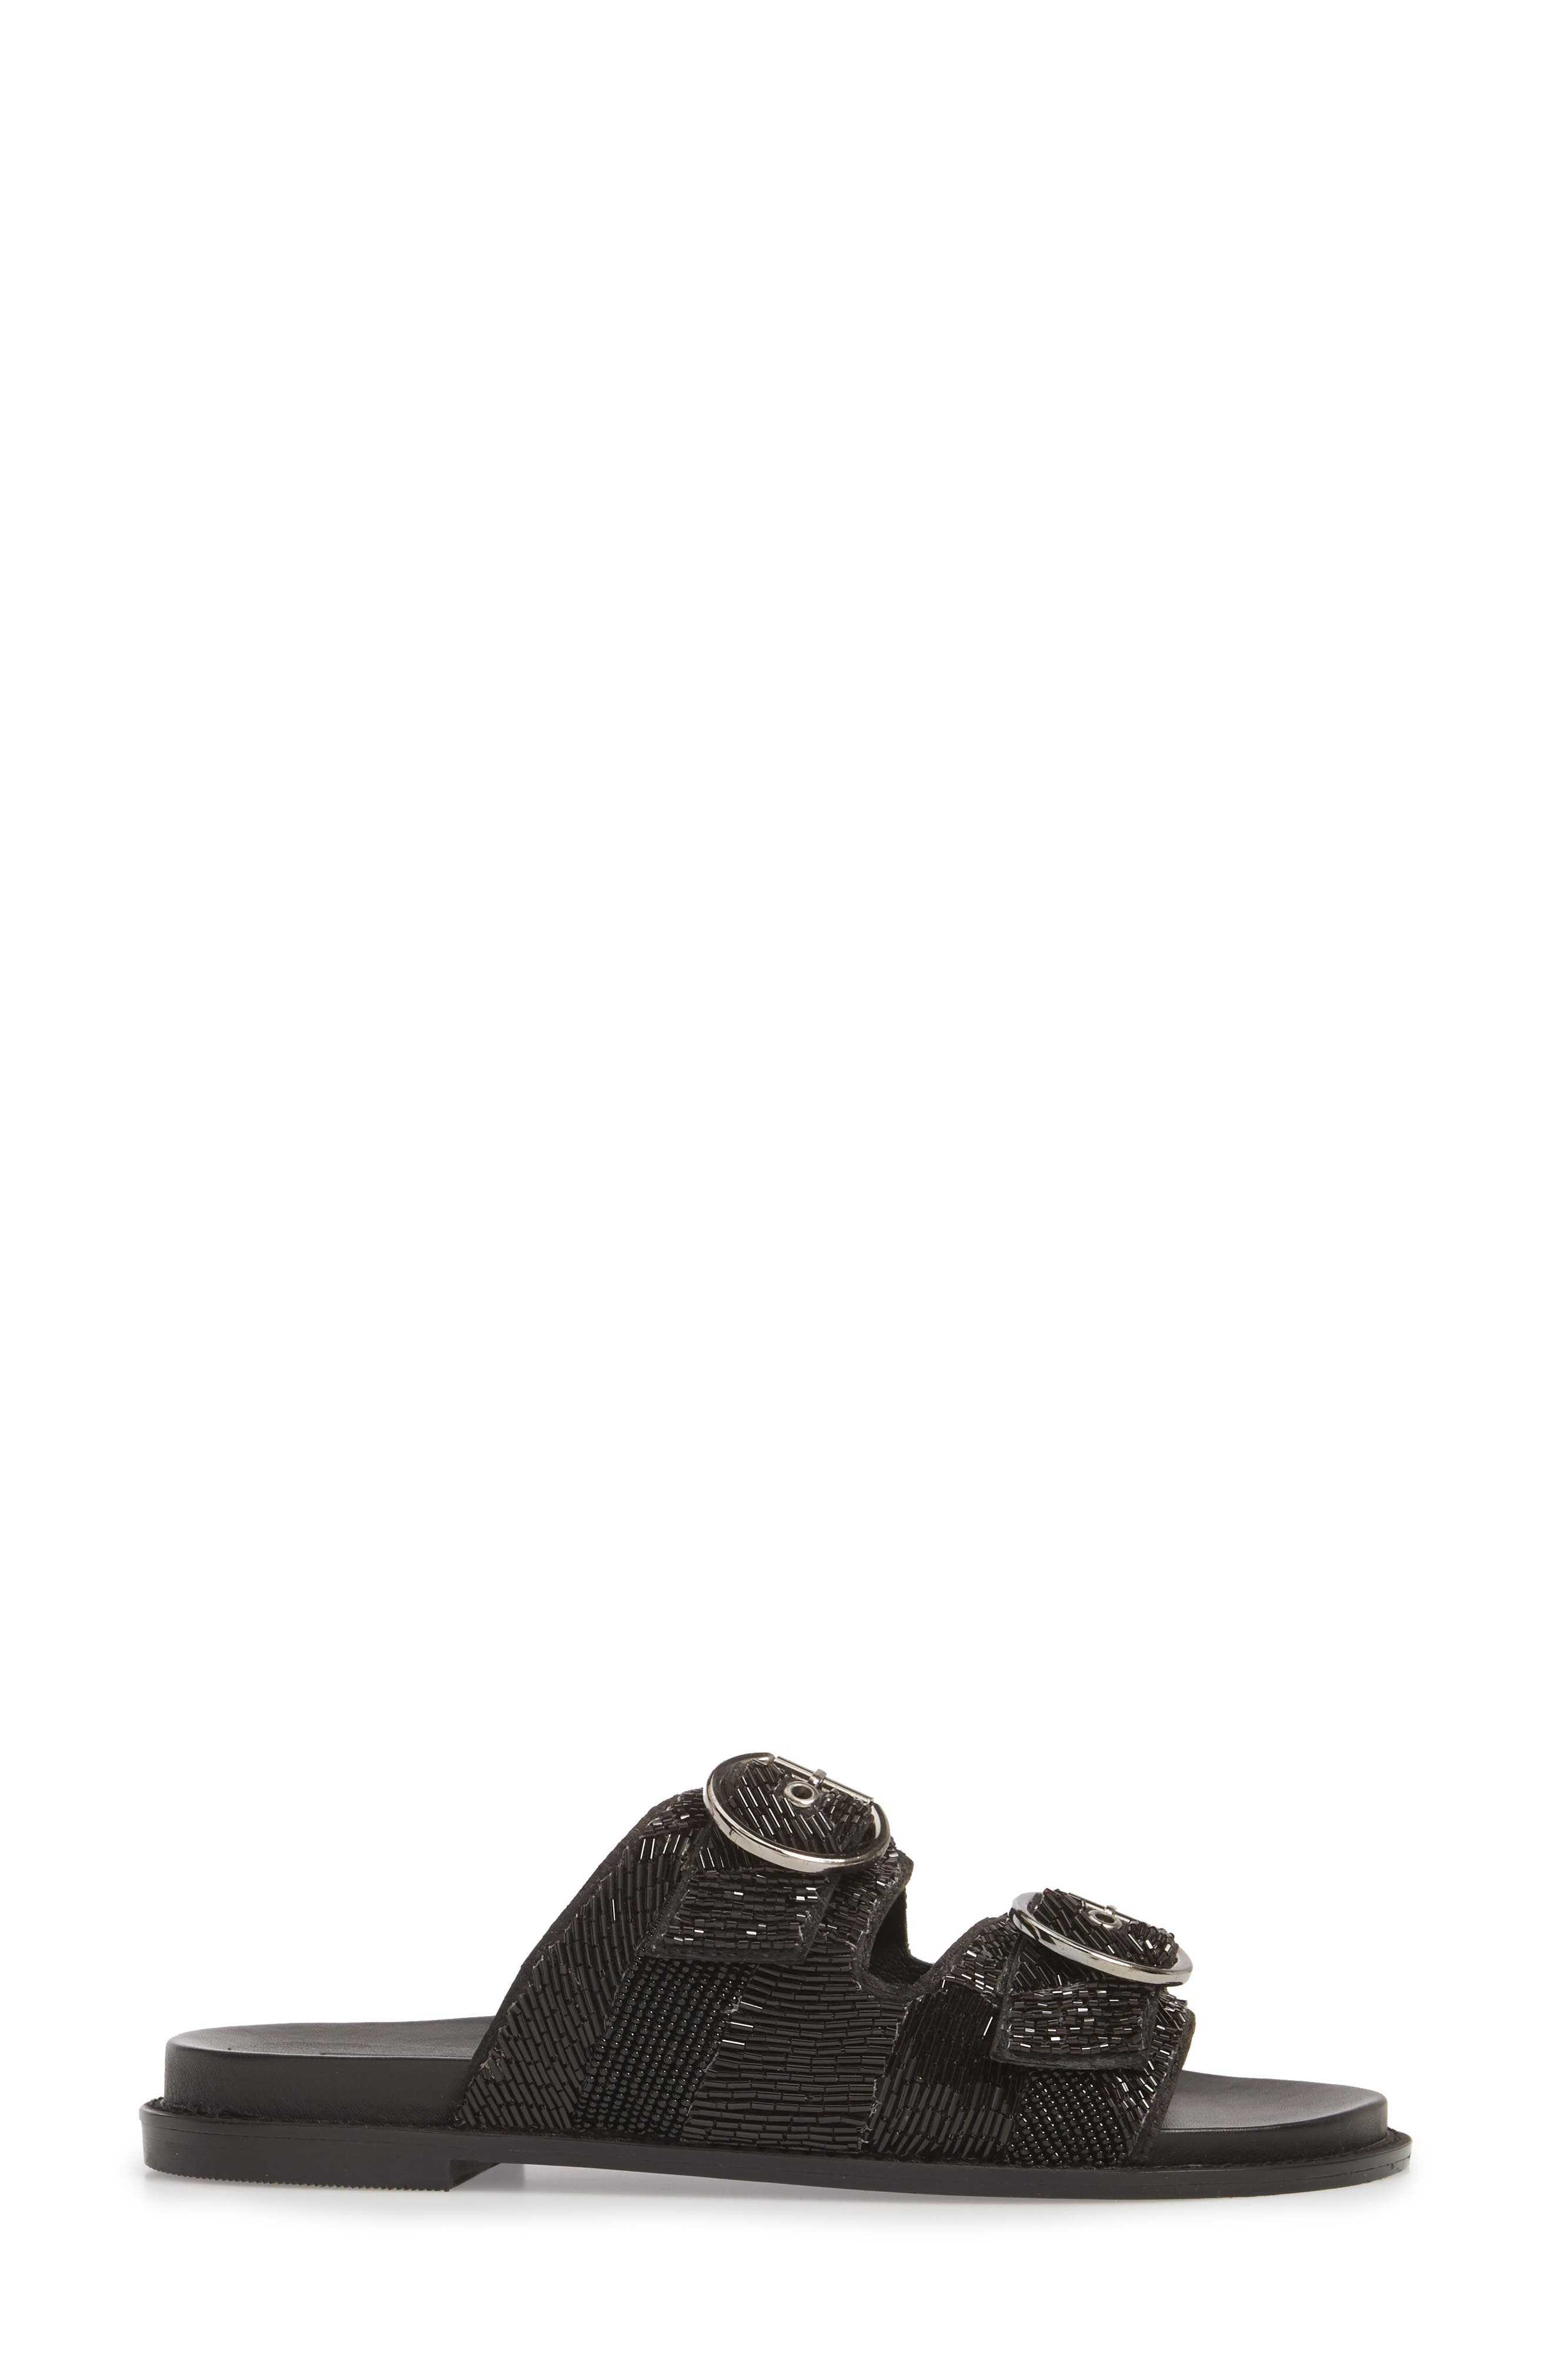 Frankie Embellished Slide Sandal,                             Alternate thumbnail 3, color,                             001